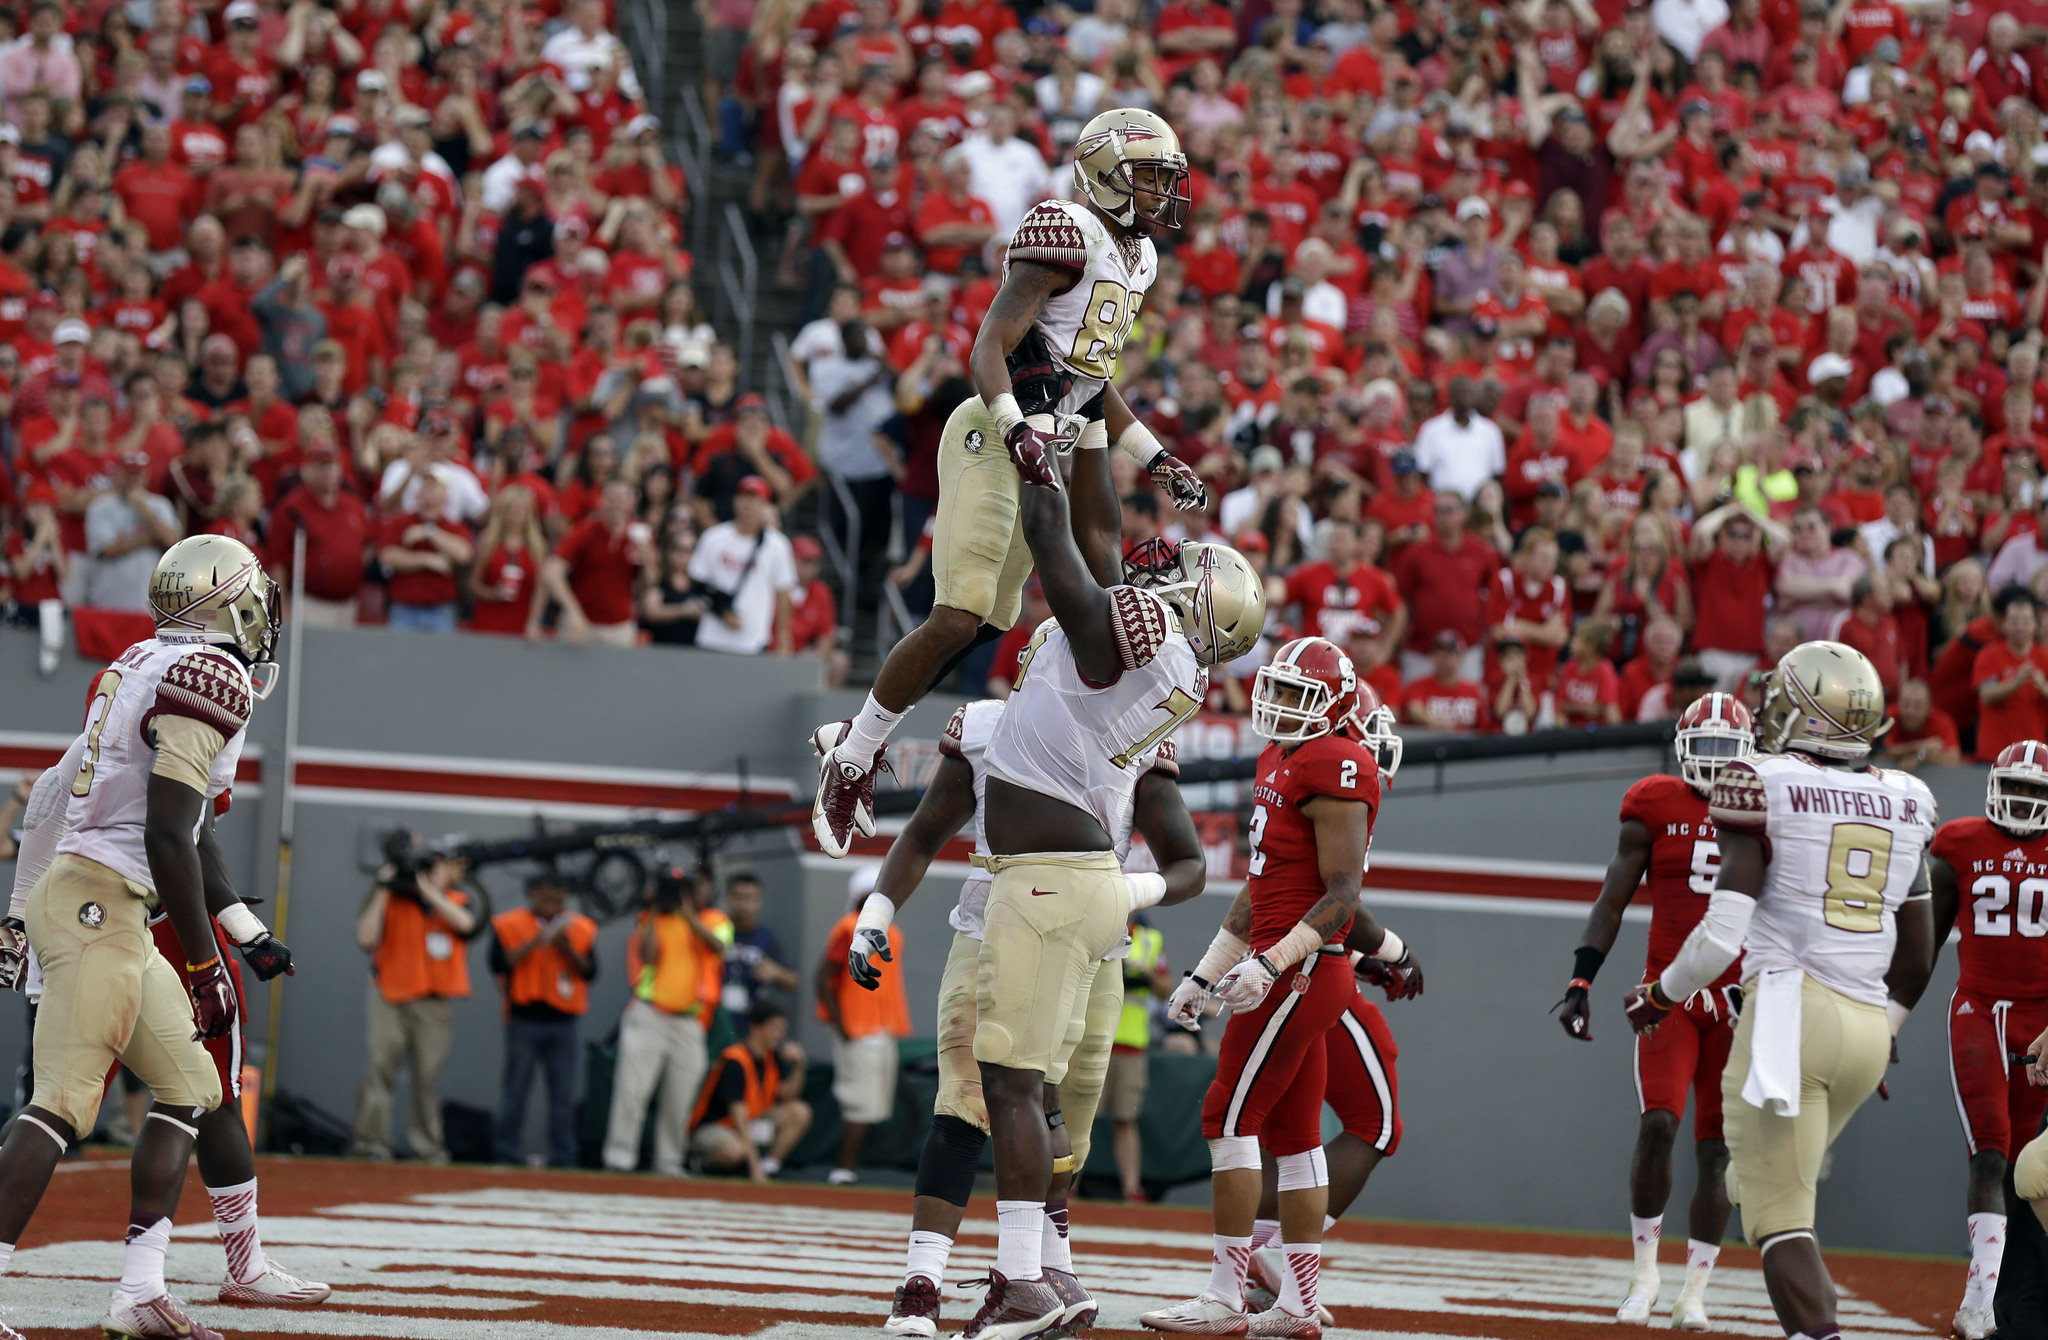 Top 25 Poll analysis: Seminoles clinging to No. 1 spot; Gamecocks in free fall